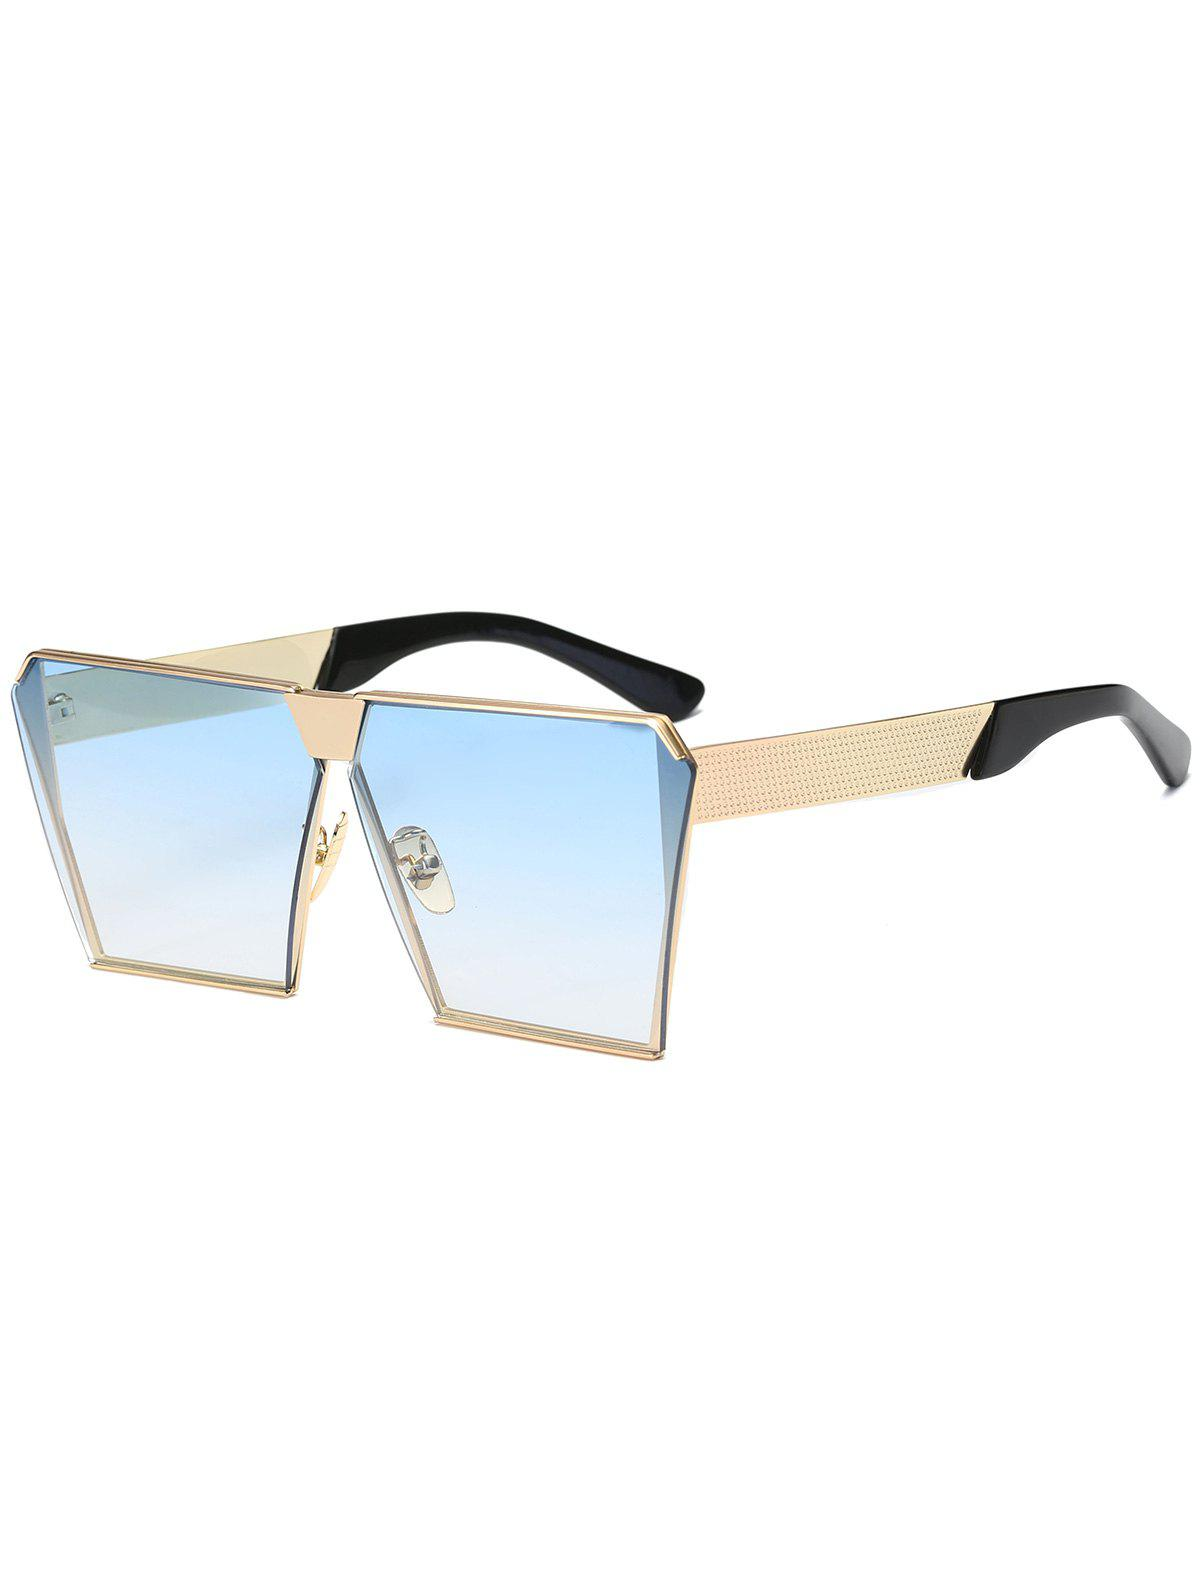 Discount Street Snap Retro Square Frame Sunglasses